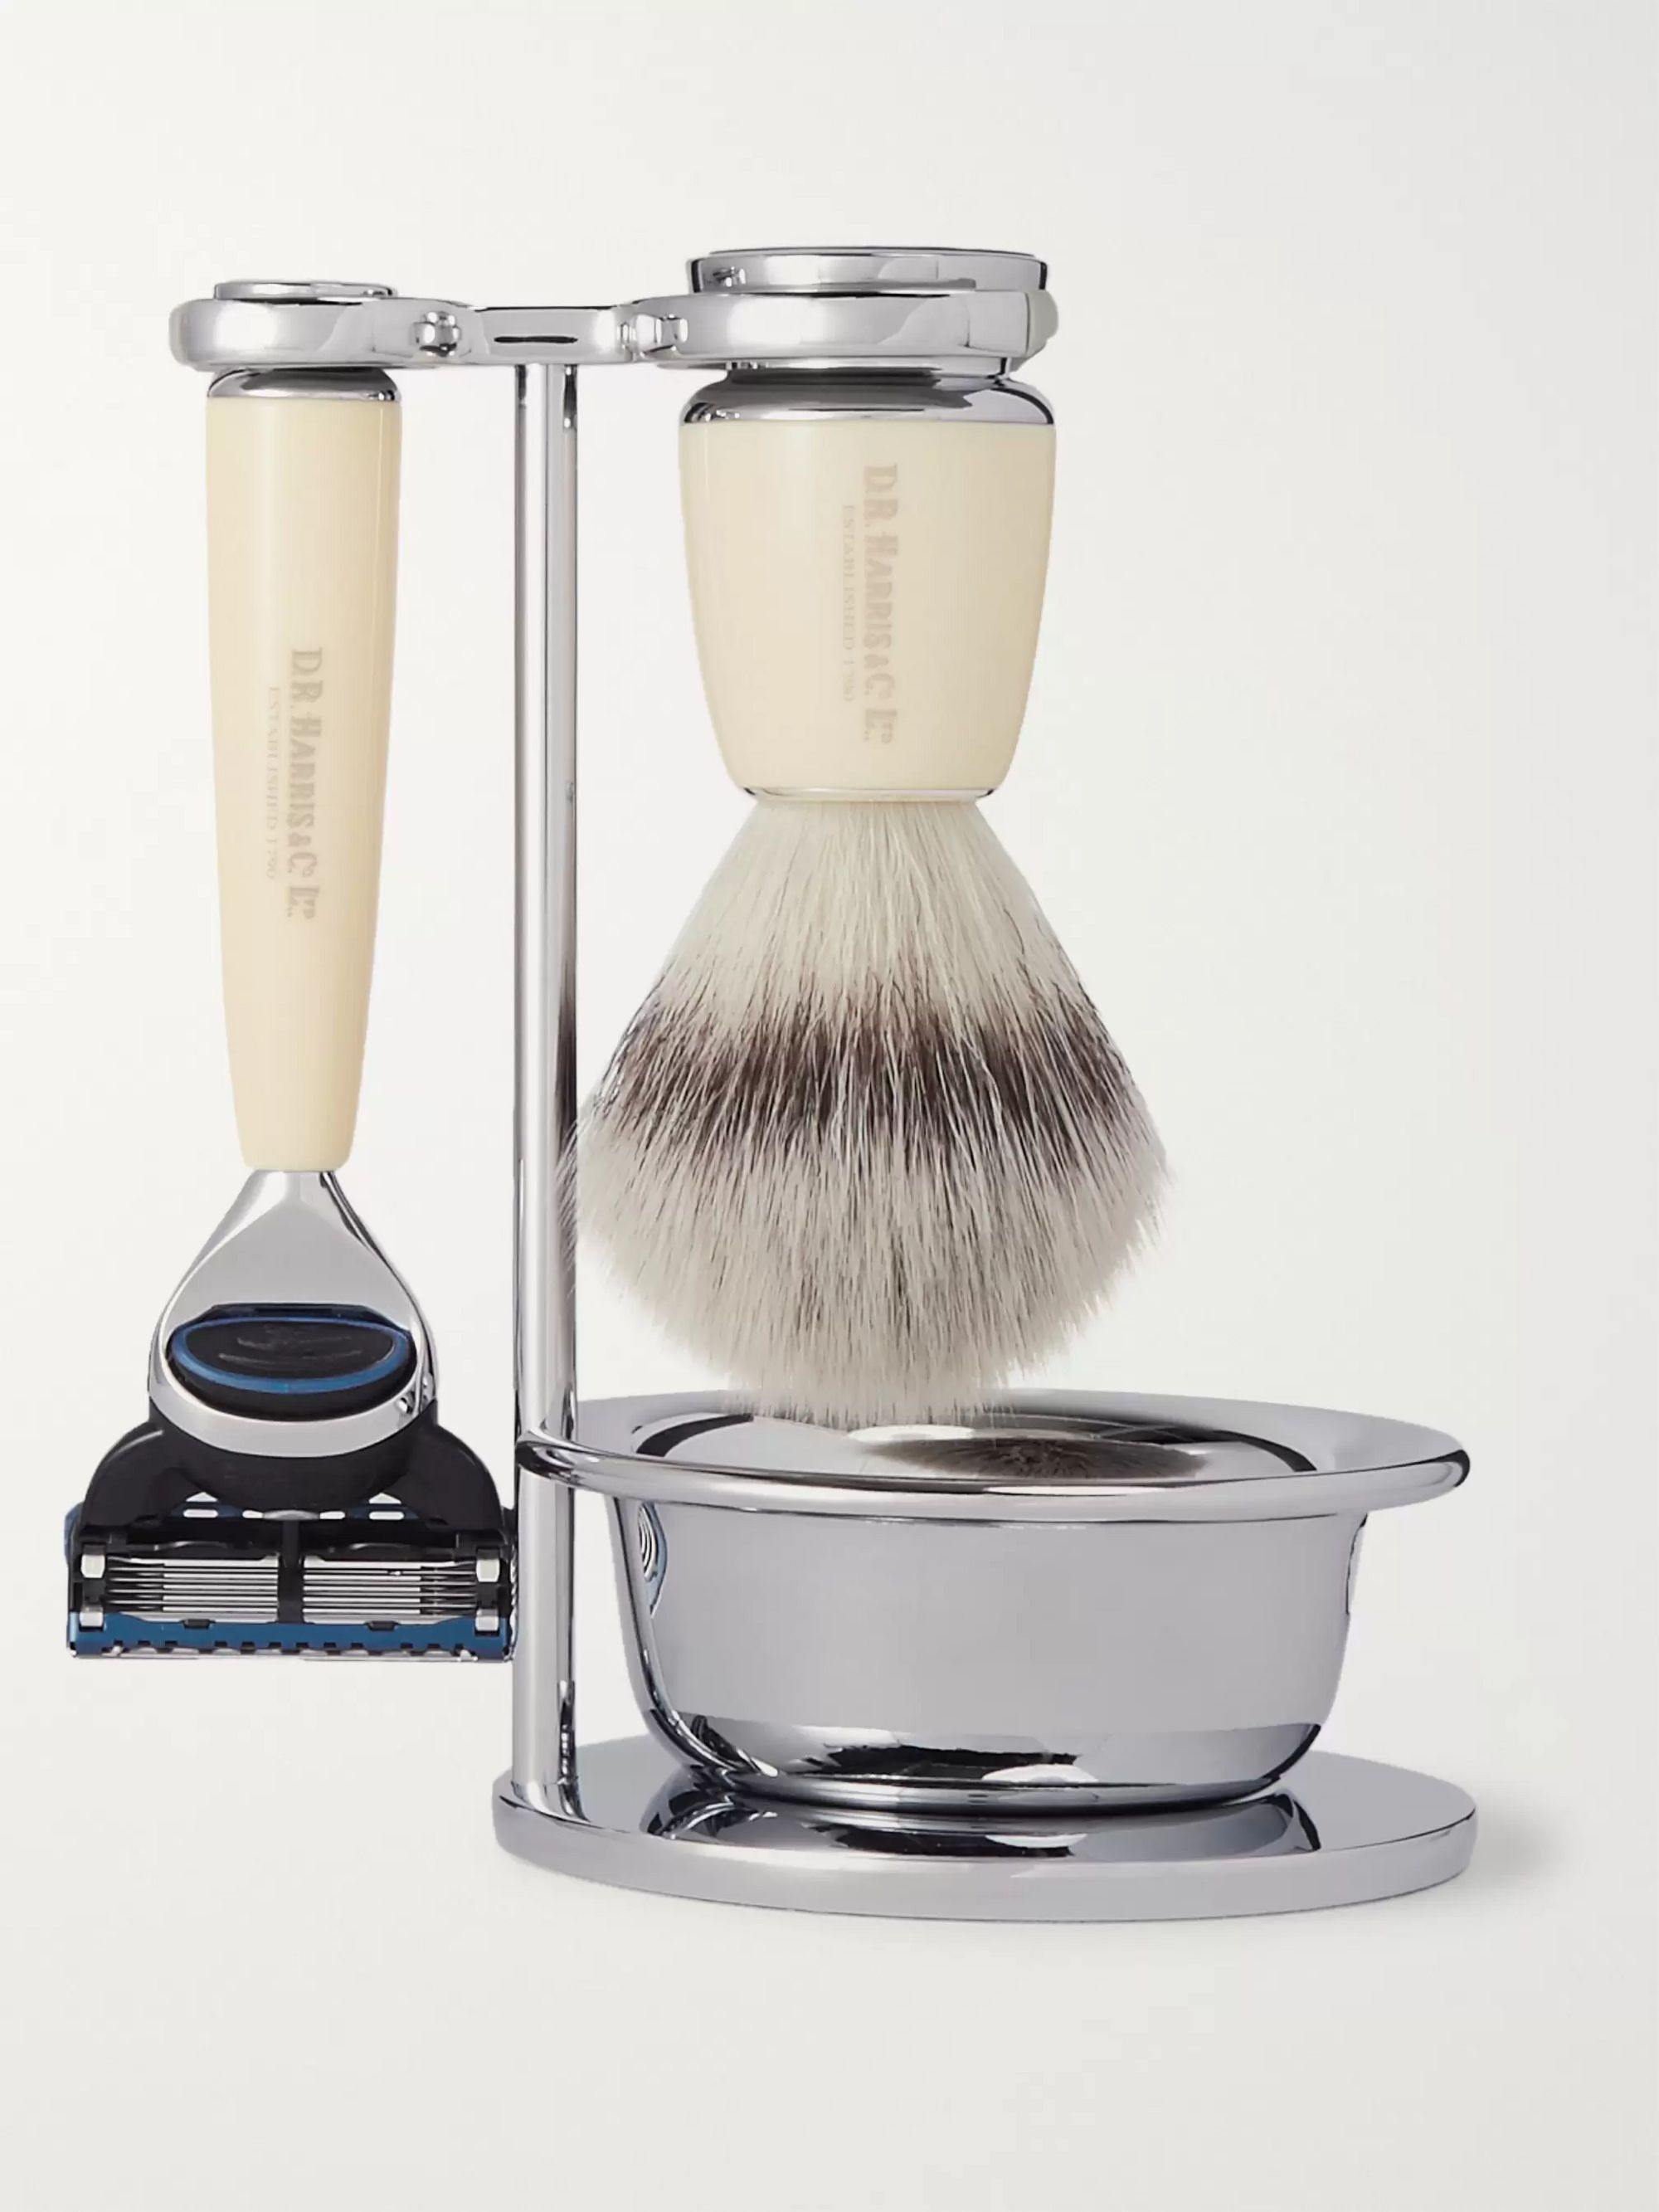 D R Harris Fusion Chrome and Resin Four-Piece Shaving Set